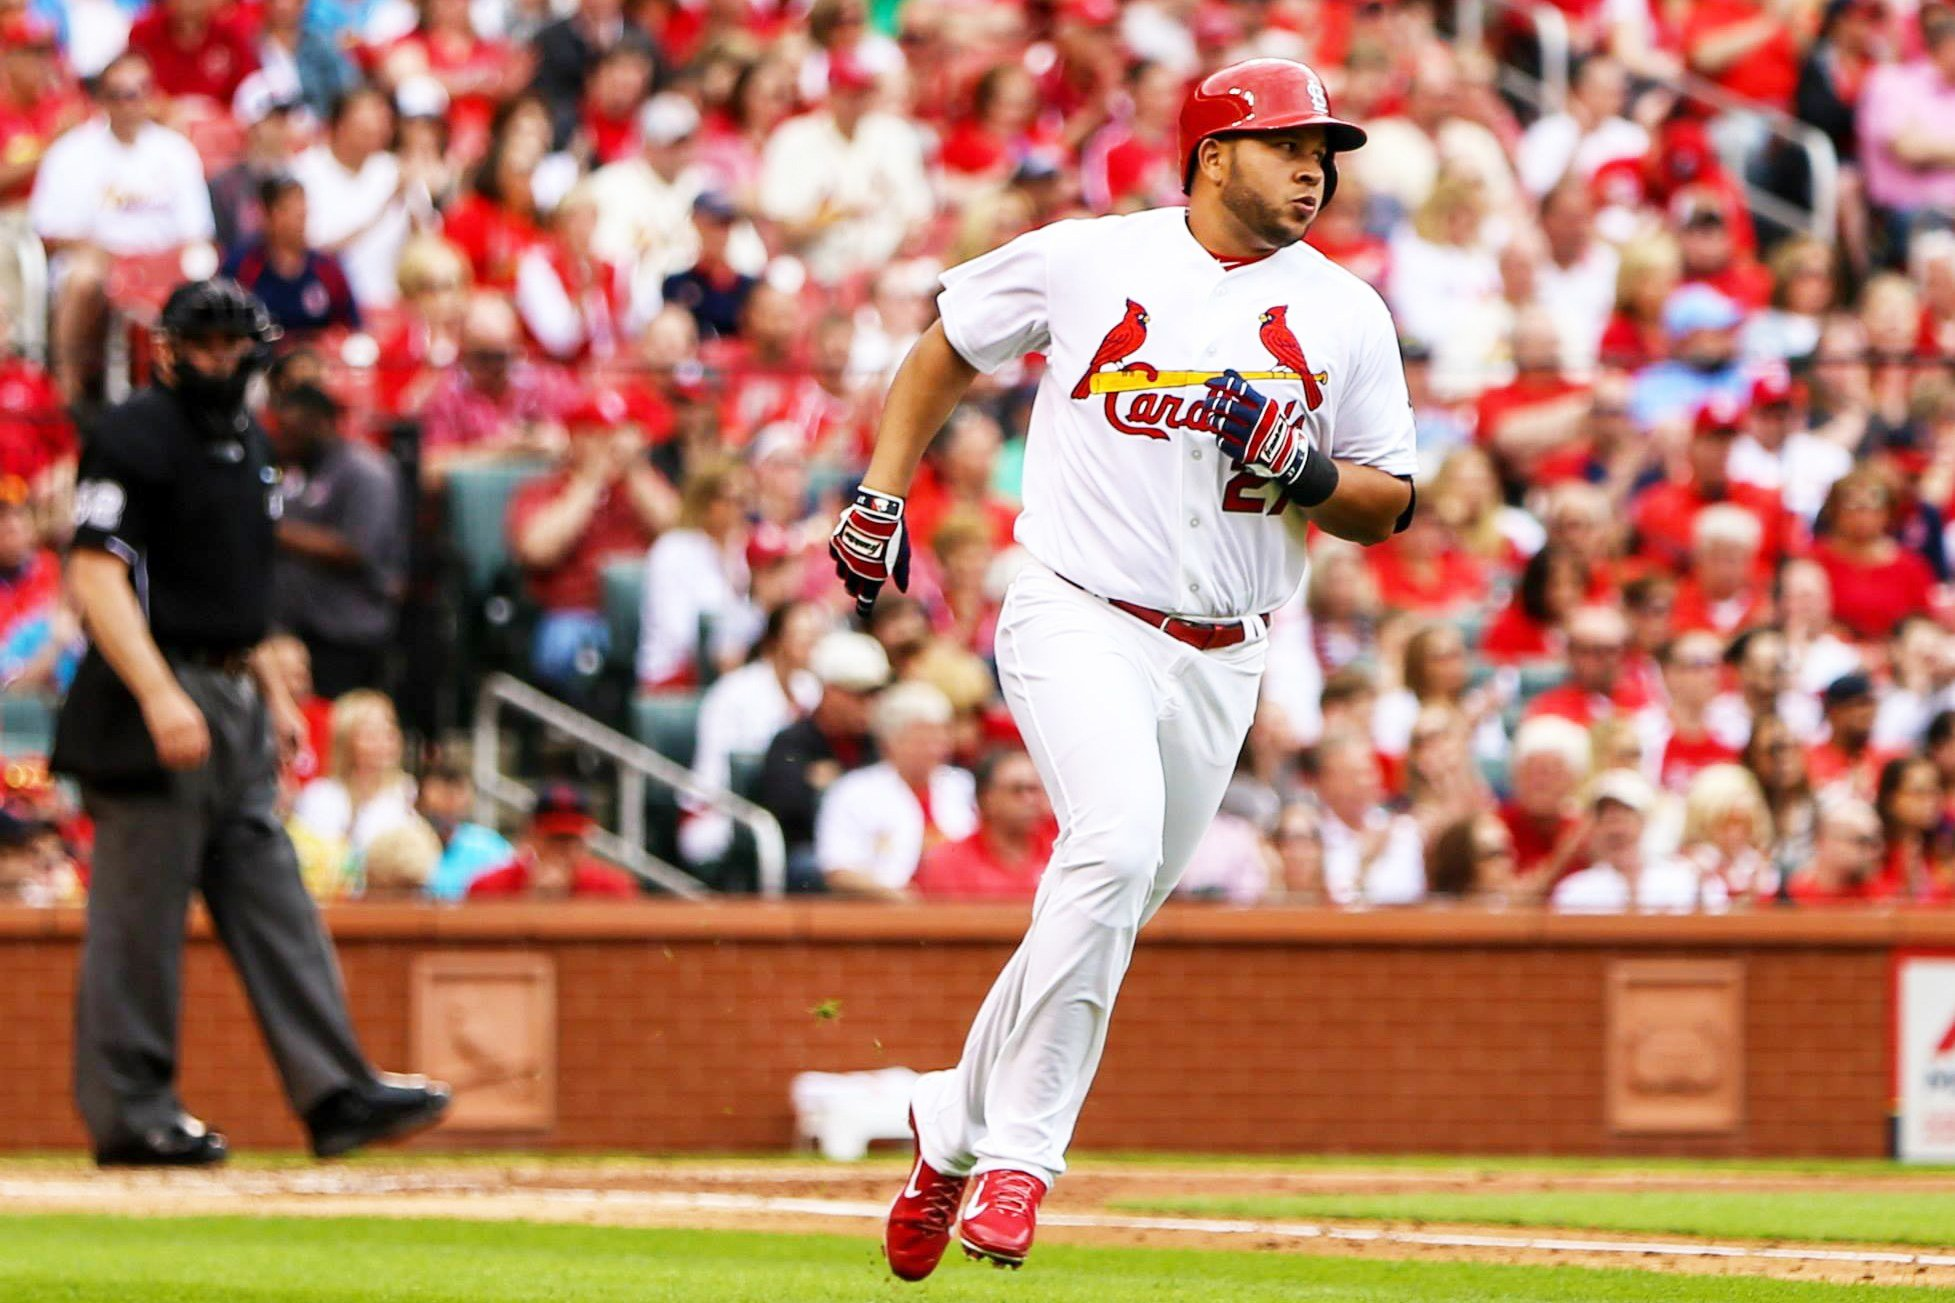 Jhonny Peralta running during a game at Busch Stadium (Credit: Zach Dalin)